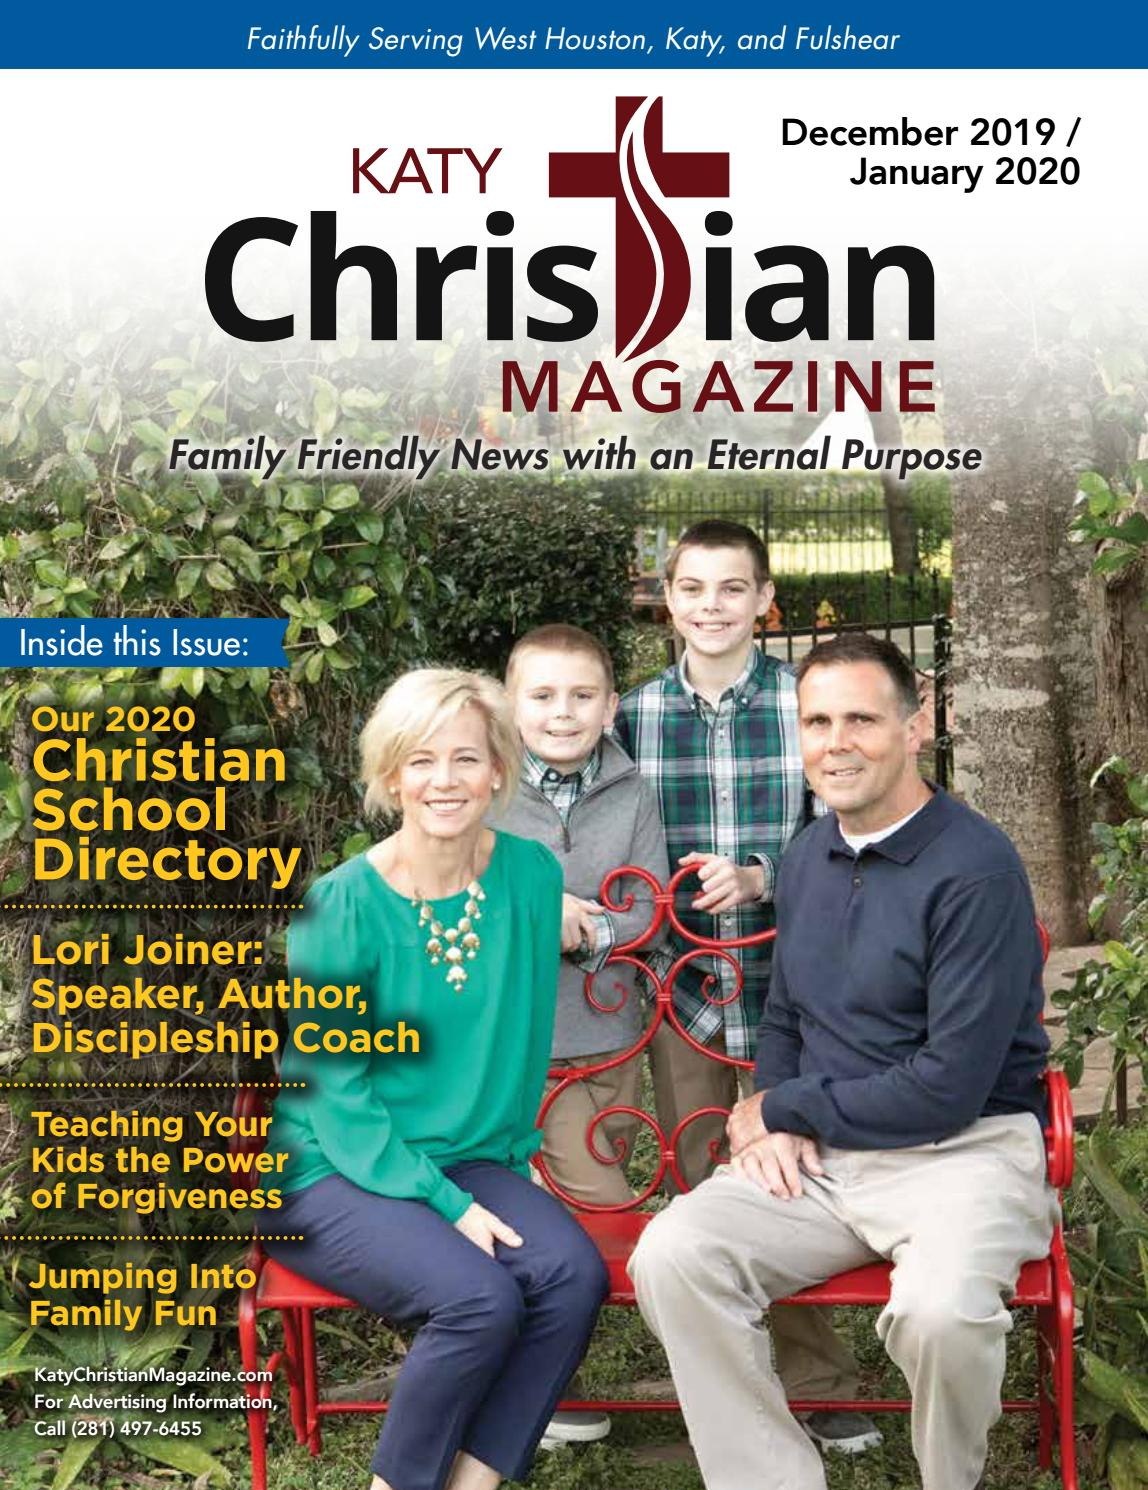 Help Save Katy Christian Magazine & Fort Bend Christian Magazine